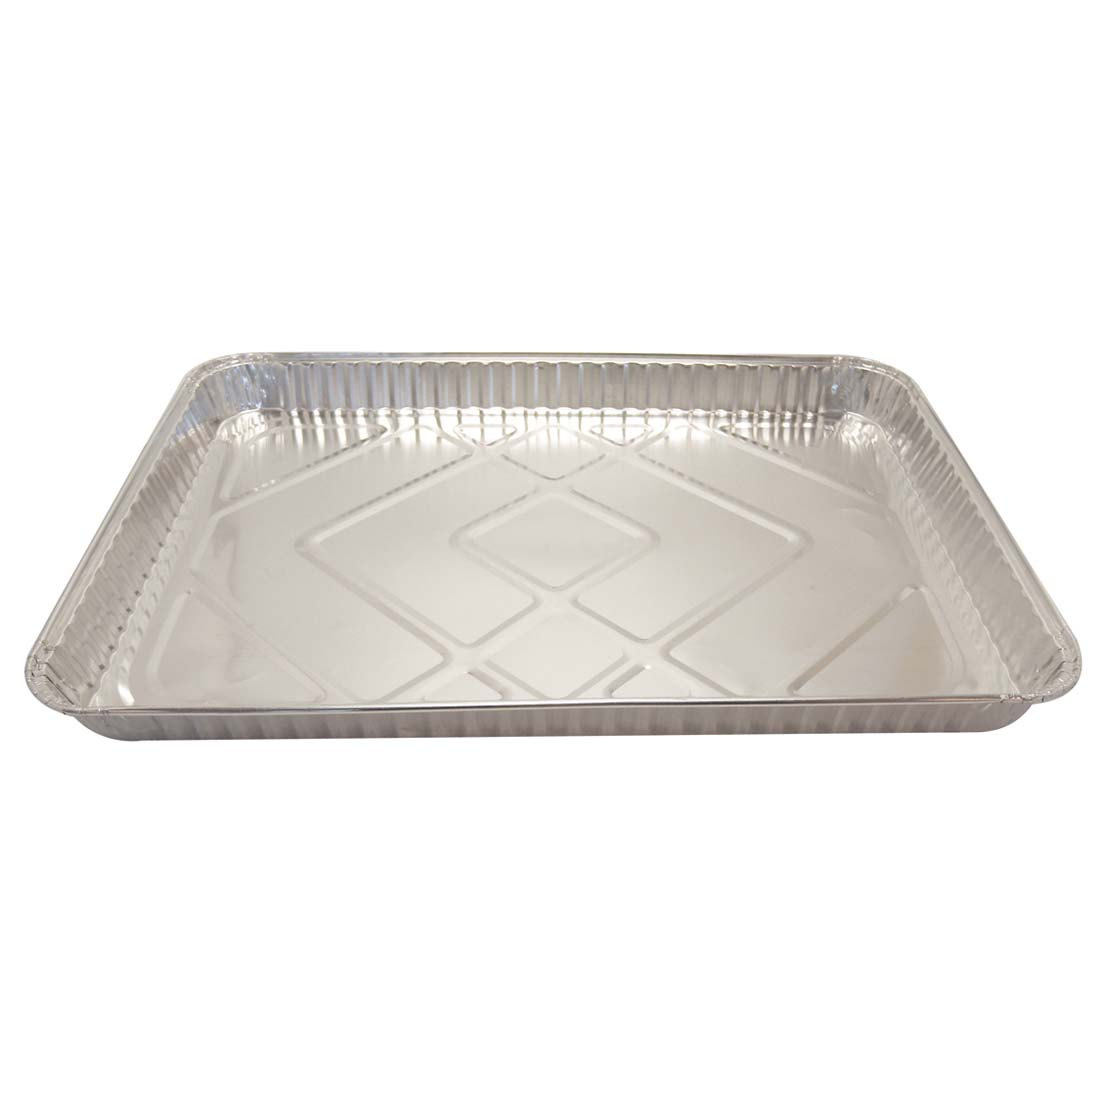 View FOIL COOKIE SHEET 1/2 SIZE 17.5 X 13 X 1.5 INCHES